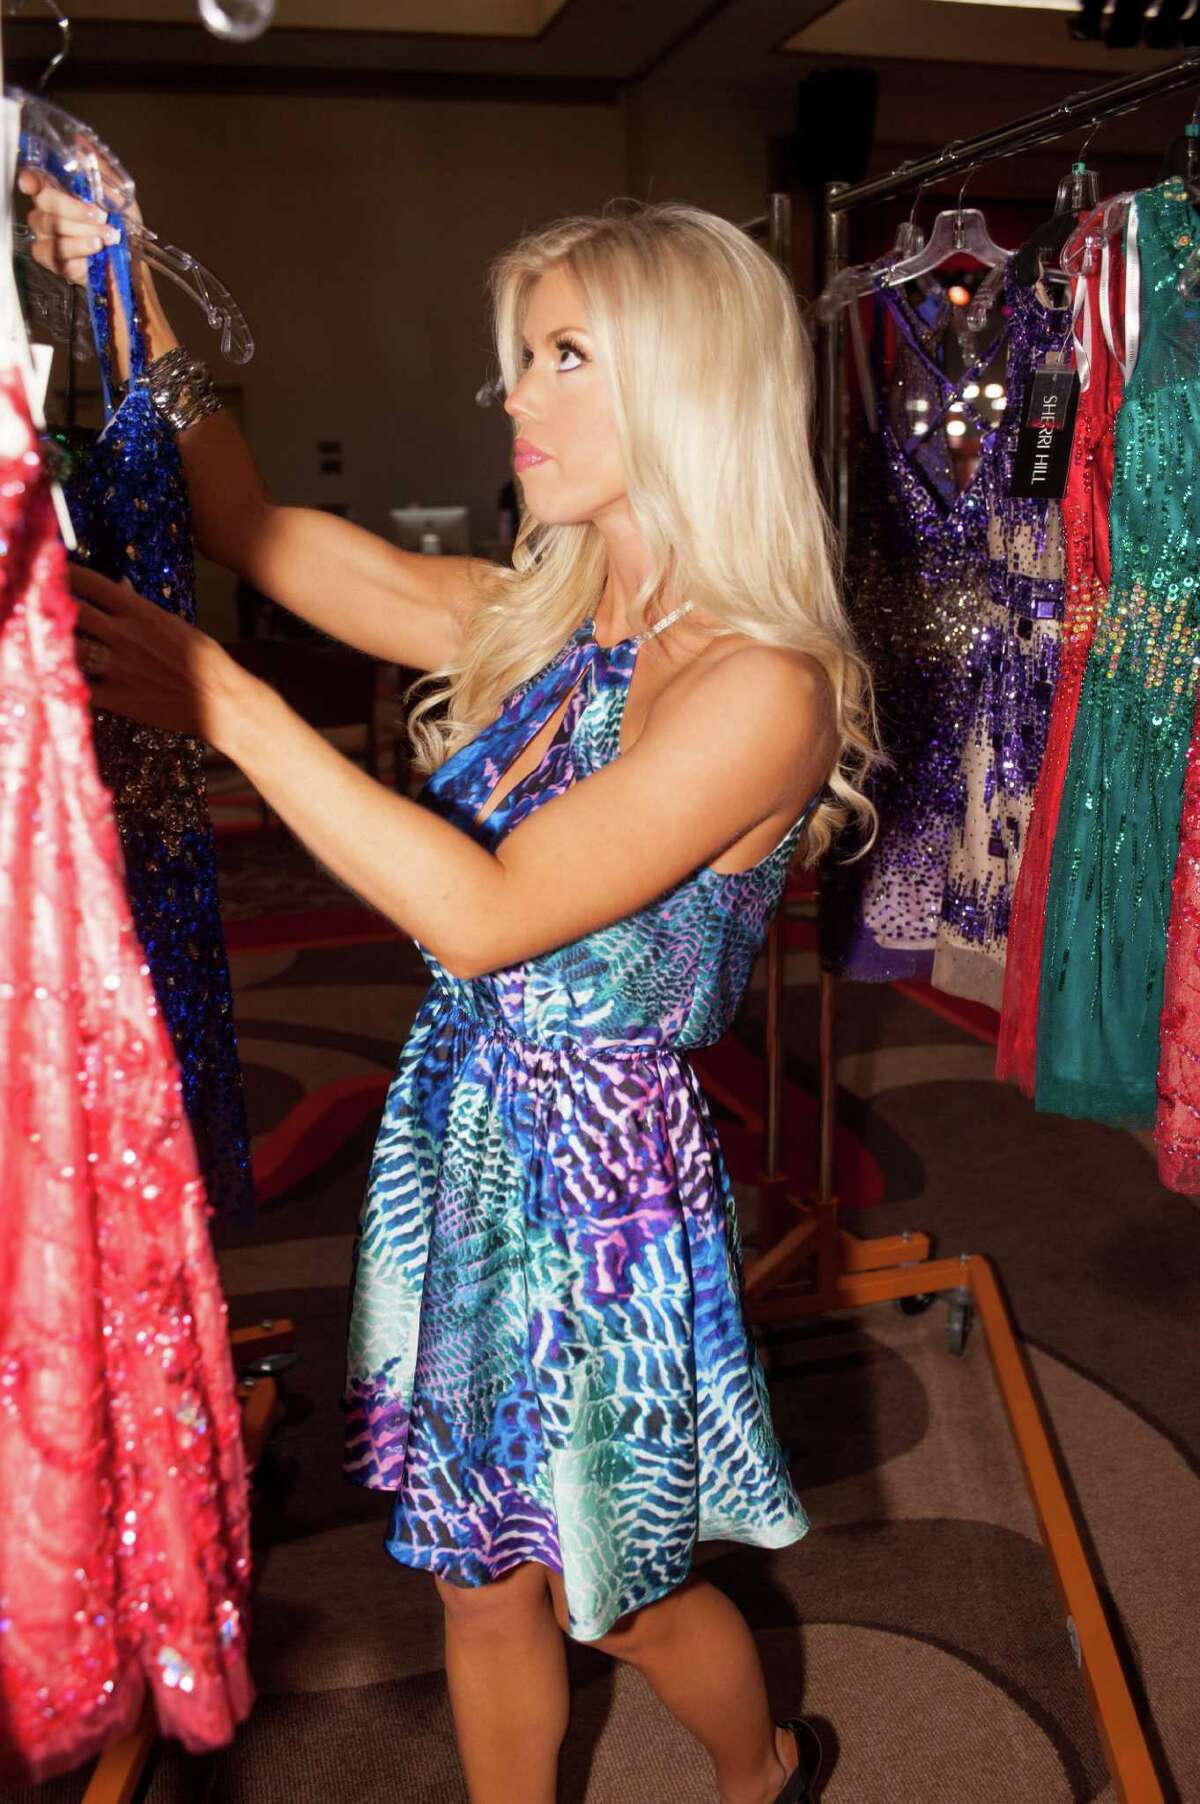 Allyson Rowe, Miss Washington USA 2014, selects a Sherri Hill Fashion design during Miss USA registration and fittings two weekends ago as the 51 contestants arrived in Baton Rouge, Louisiana. The pageant finals are Sunday night (NBC, 8 p.m., delayed three hours in the Pacific time zone).